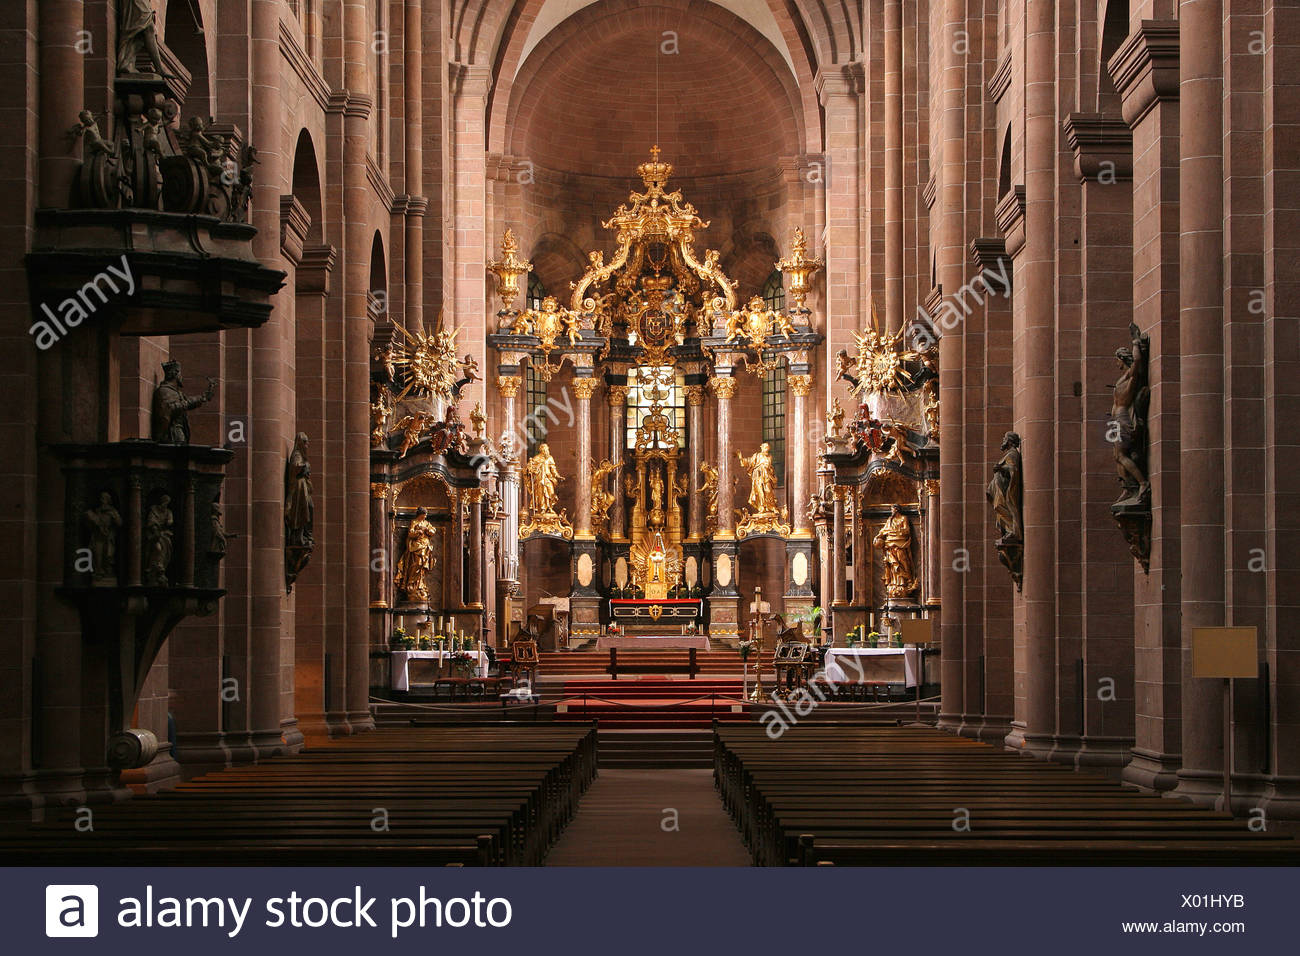 Interiors of cathedral, Worms Cathedral, Worms, Rhineland-Palatinate, Germany - Stock Image